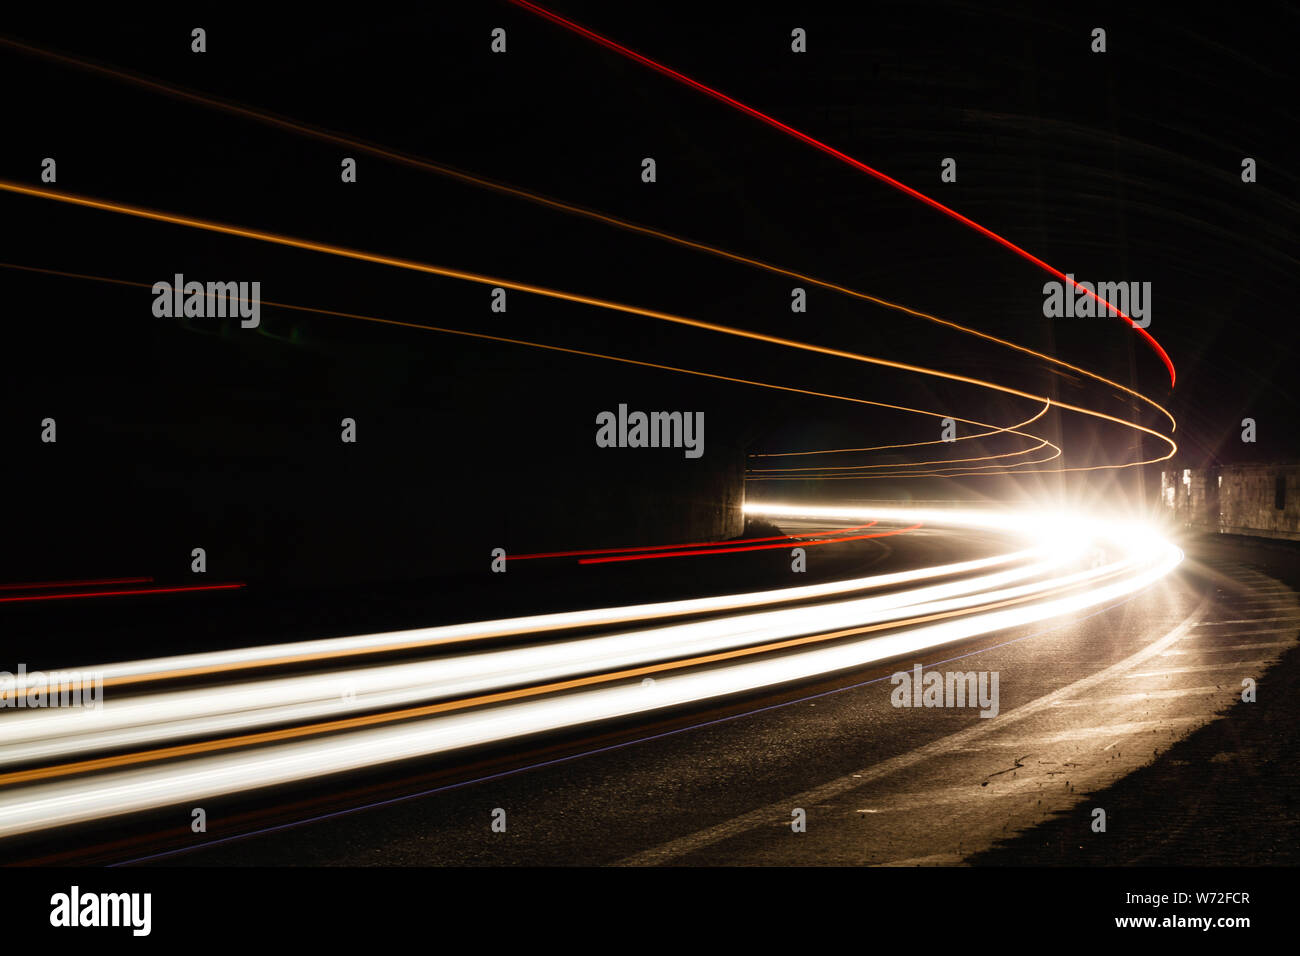 Car Light Trails In The Tunnel Long Exposure Photo Taken In A Tunnel Below Veliko Tarnovo Stock Photo Alamy